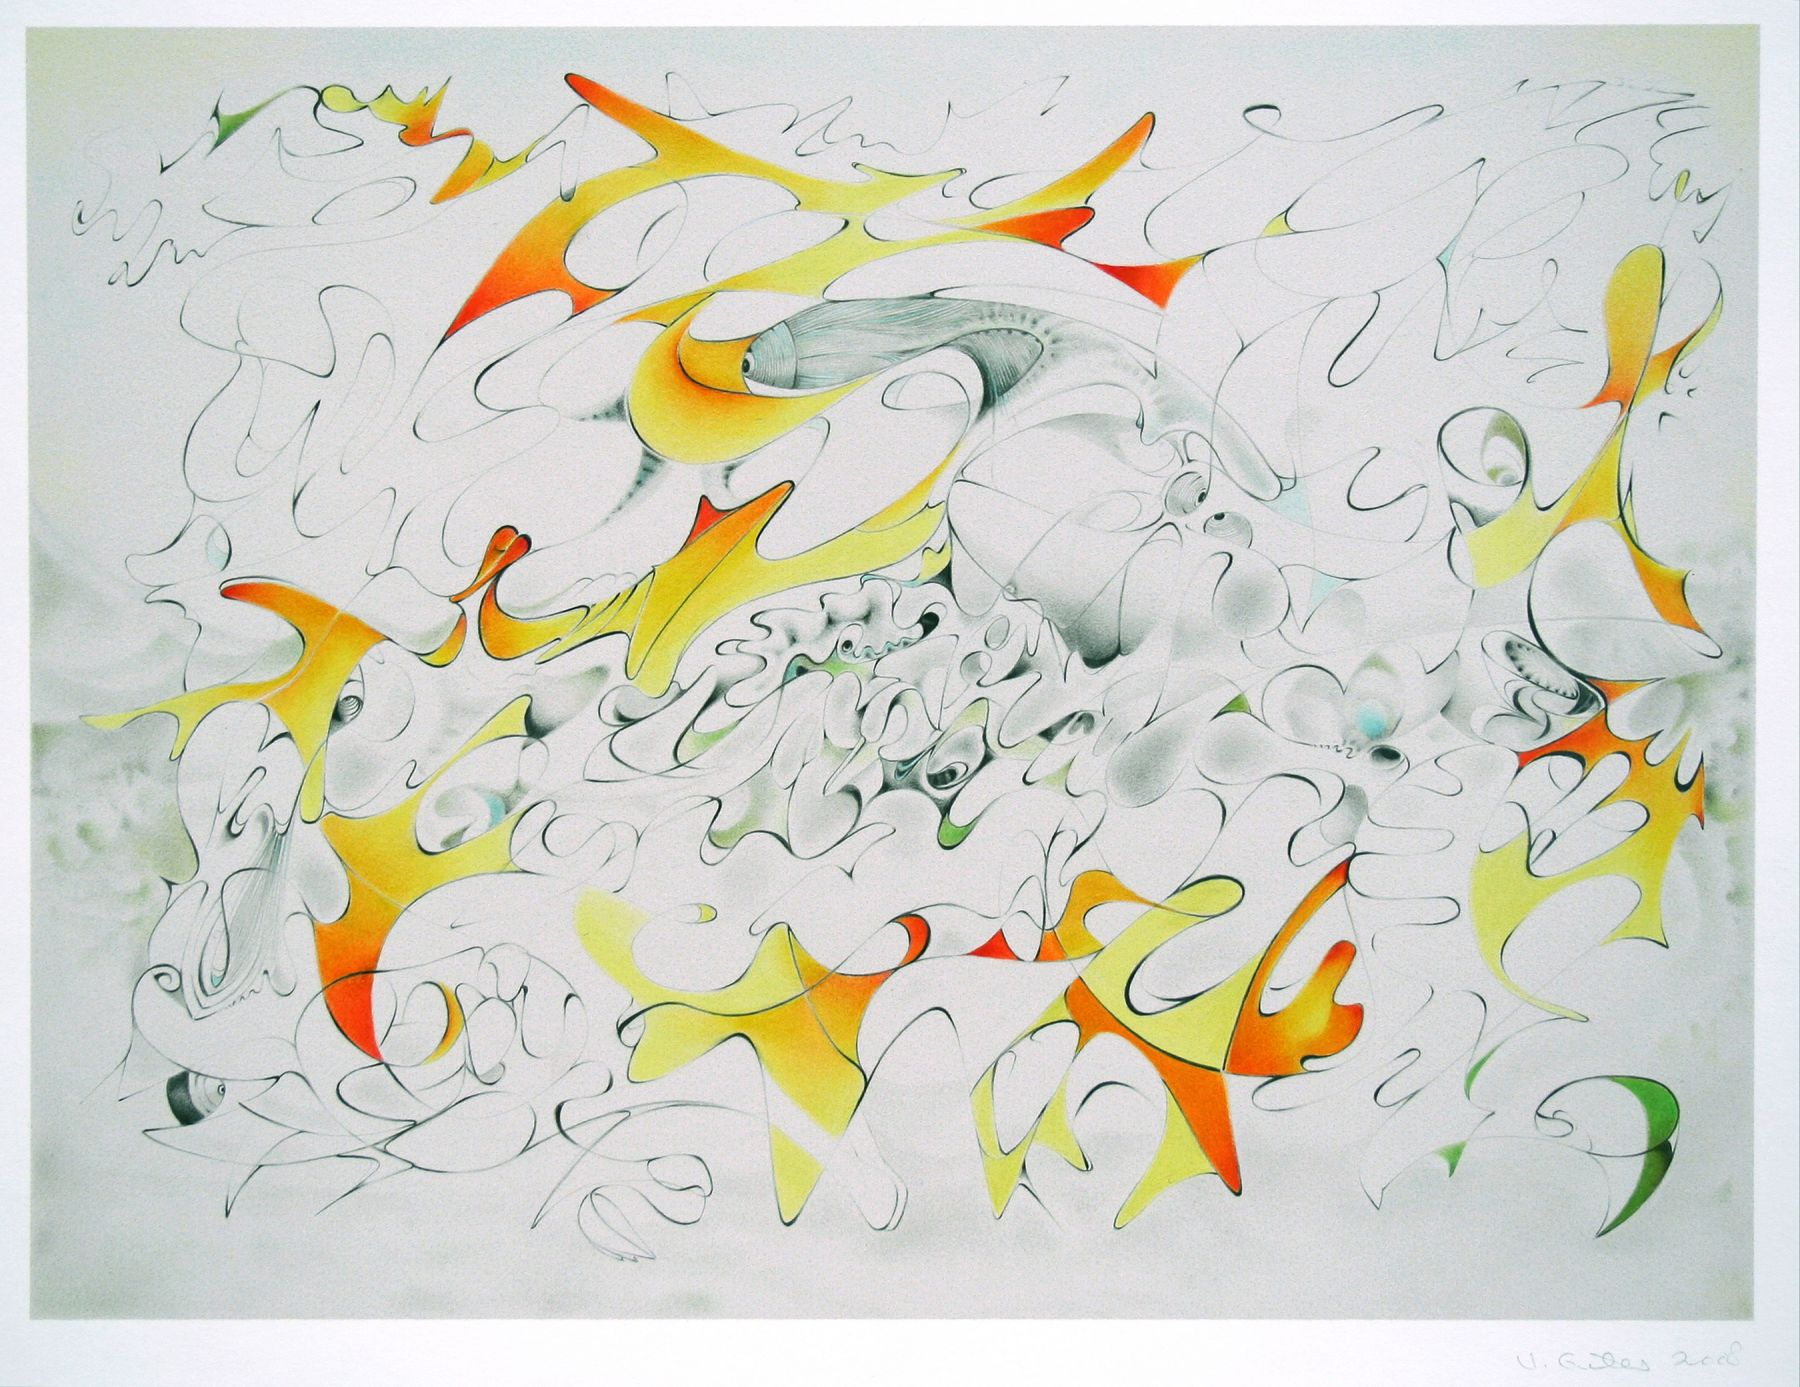 Valerie Giles, Untitled, 2008